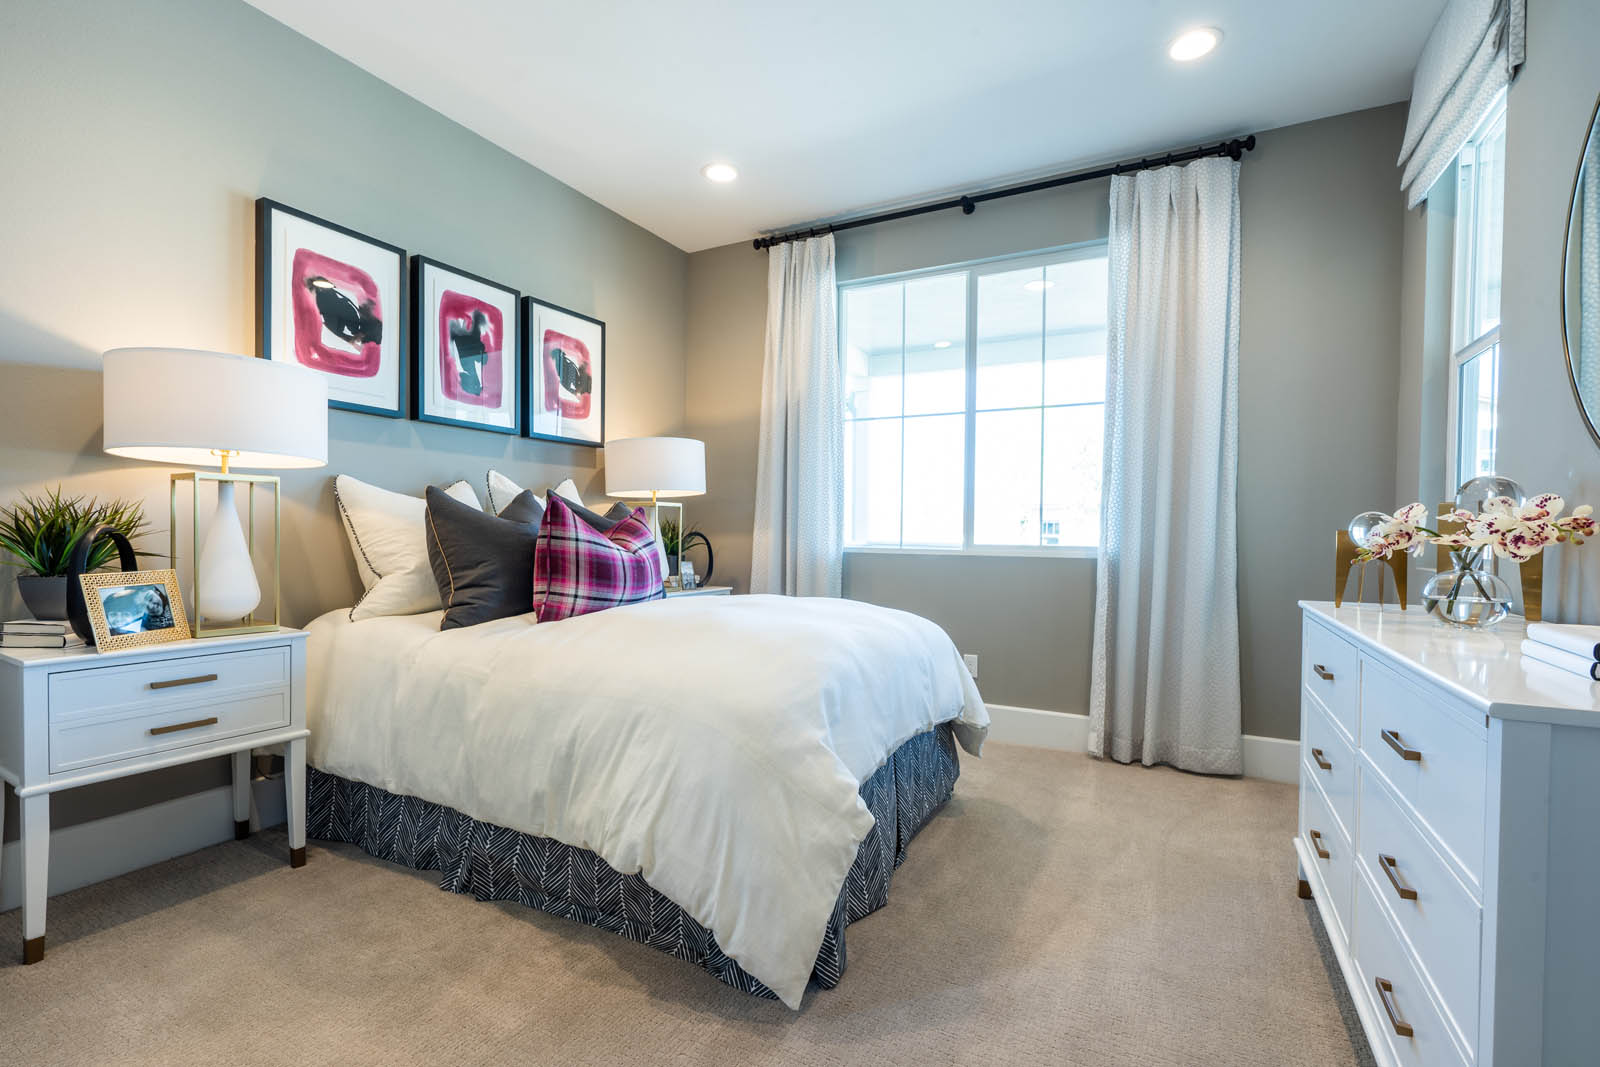 Bedroom 5 in Alsbury at Arborly at Sommers Bend